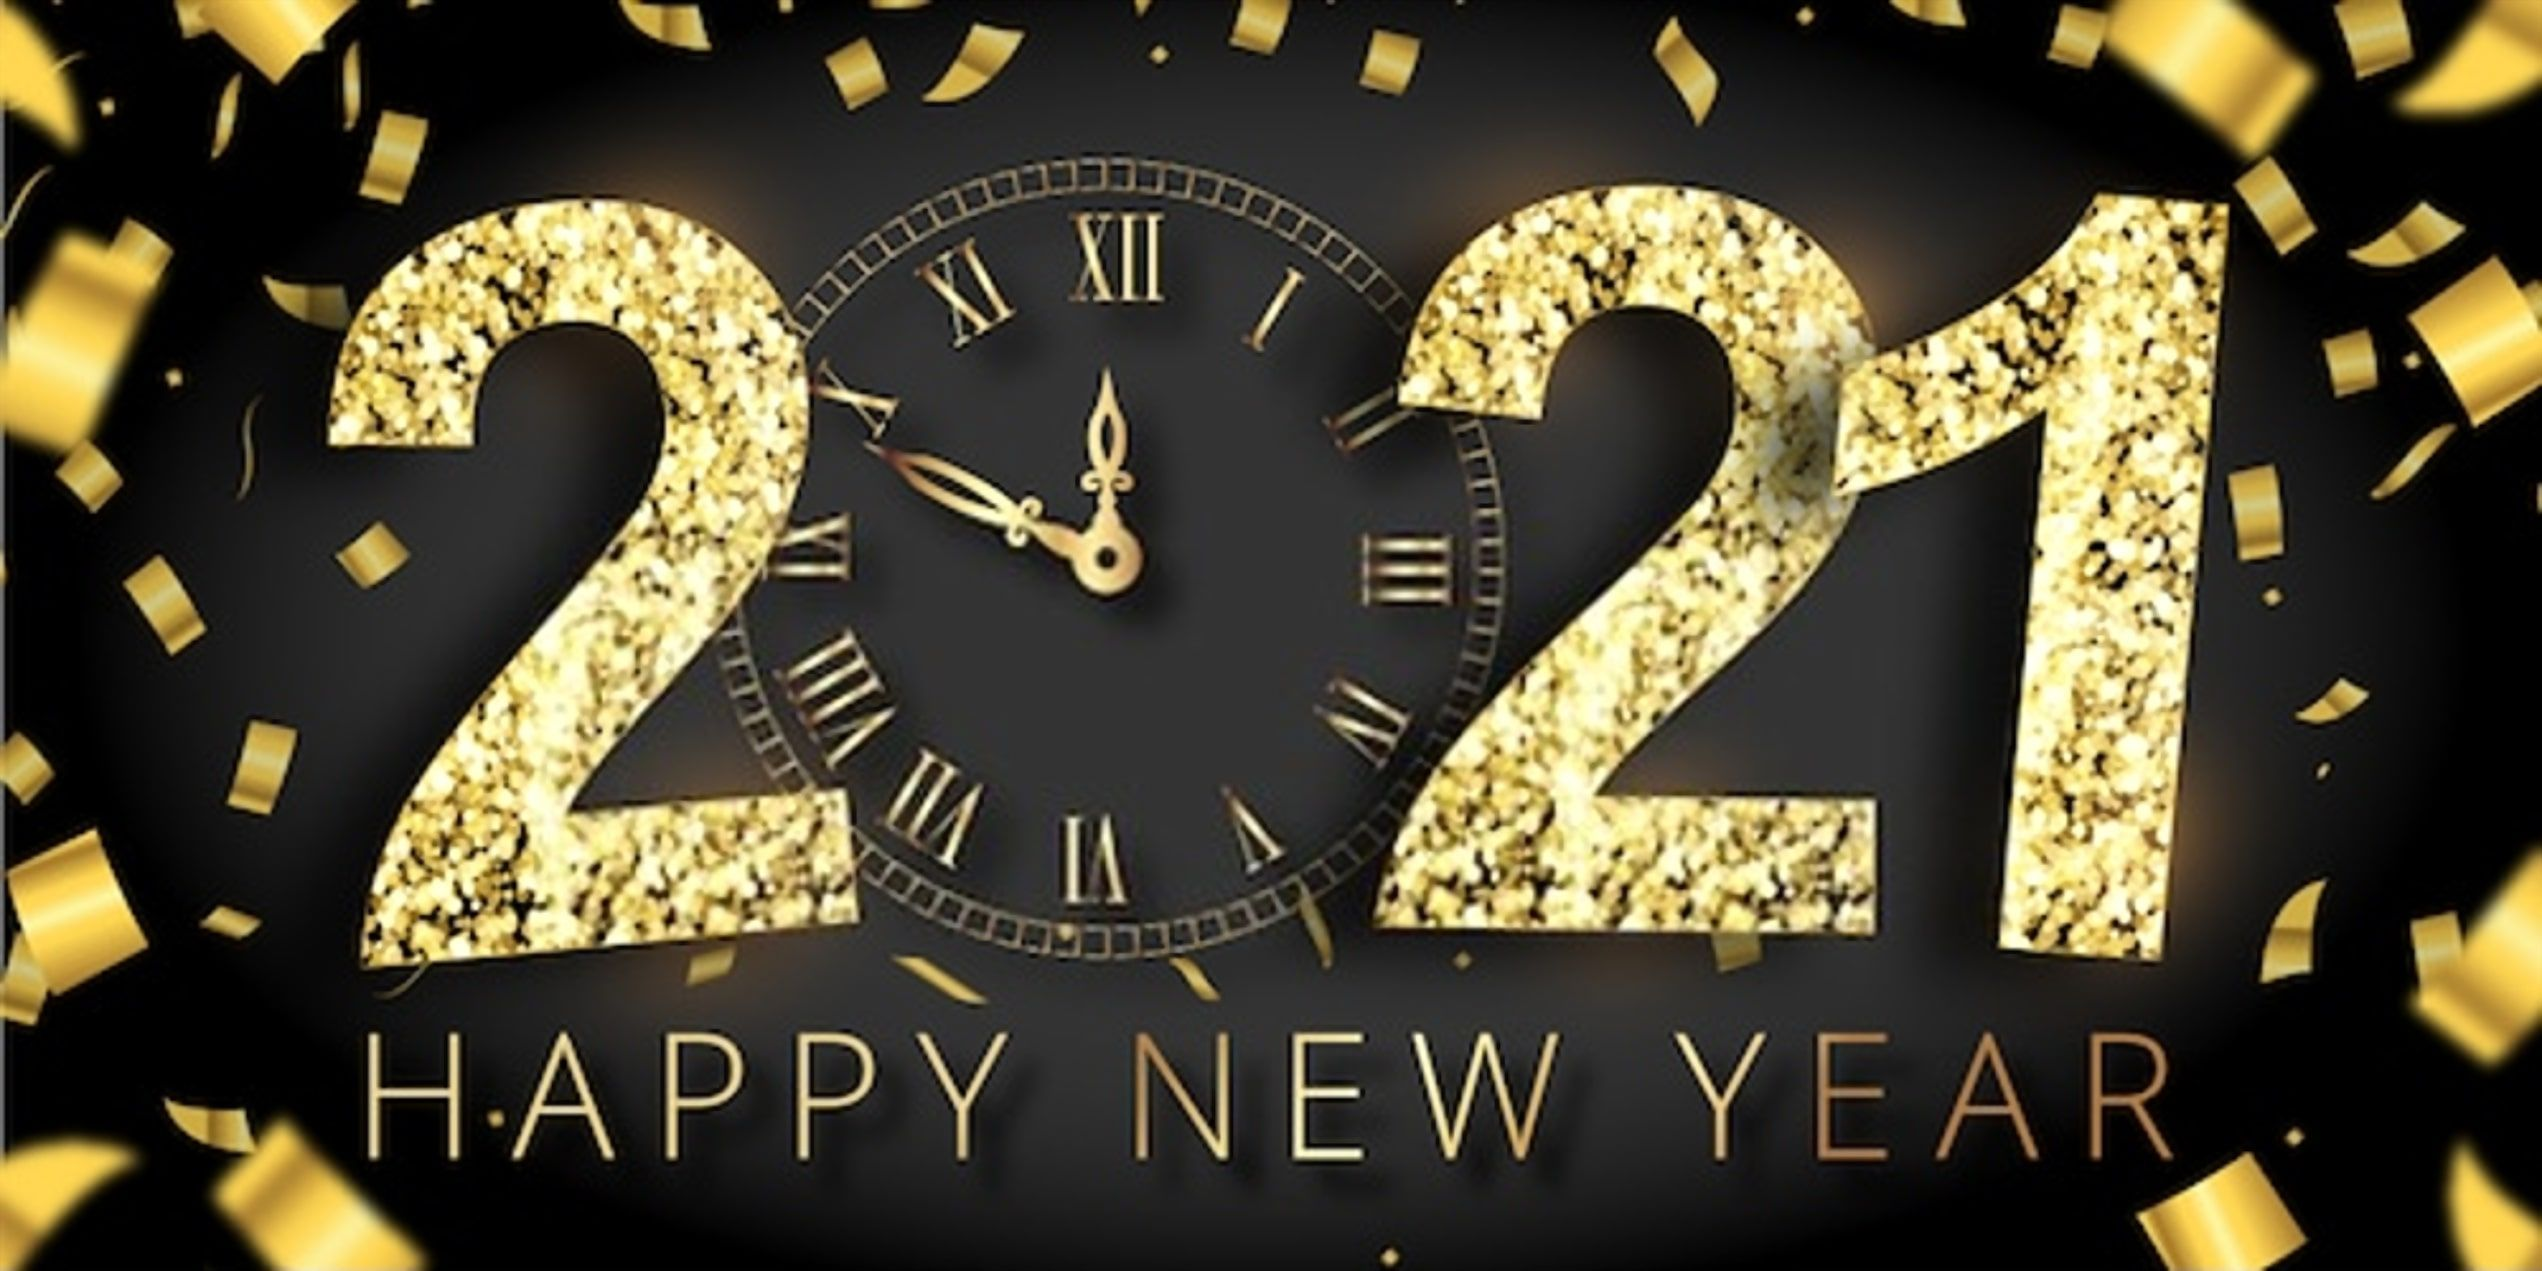 Happy New Year 2021 Wallpapers